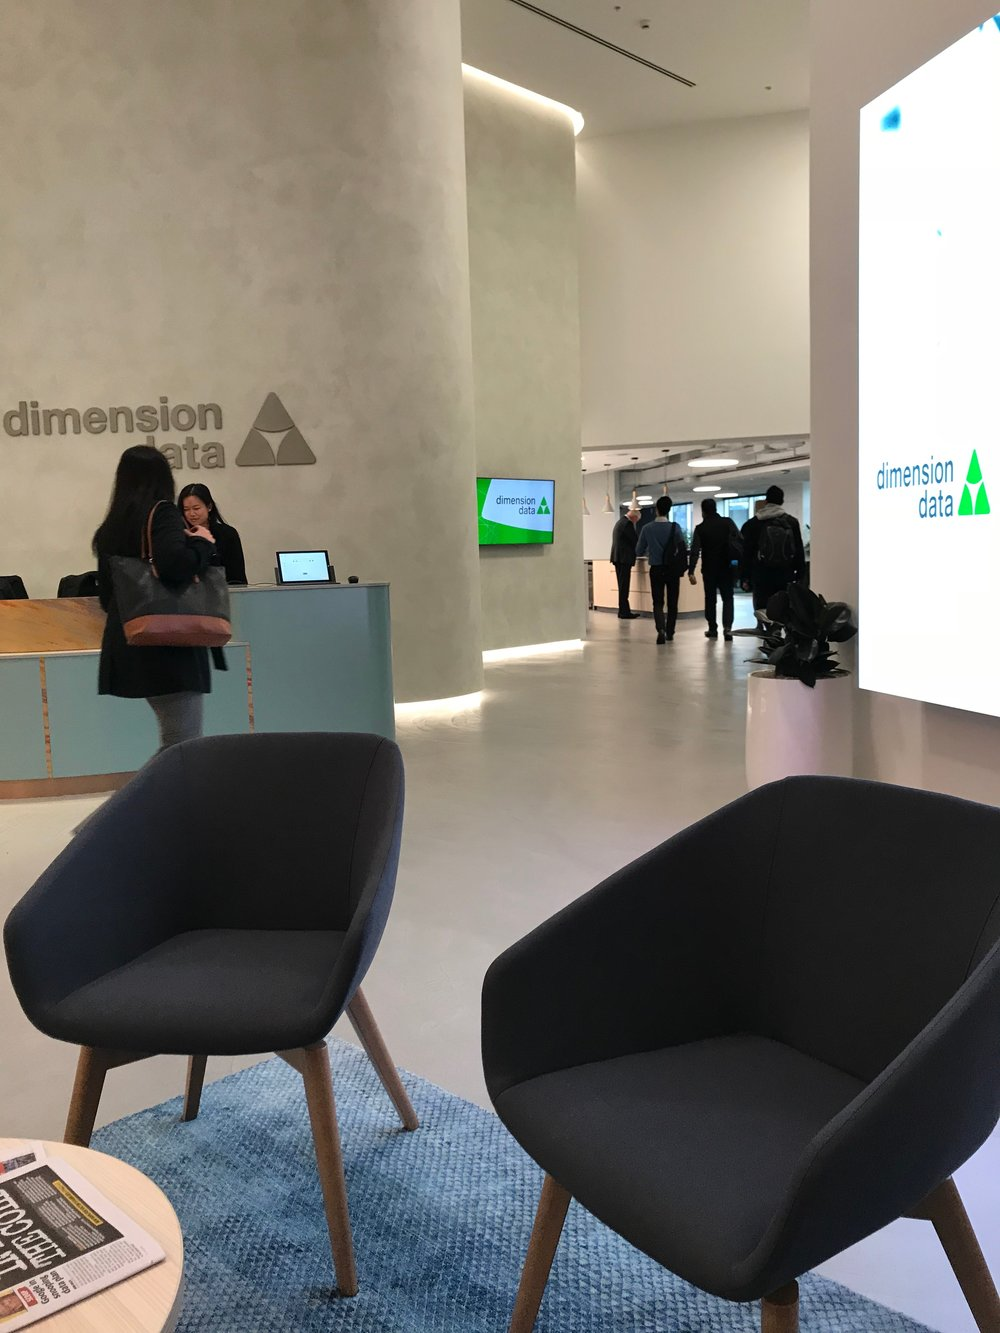 Dimension Data Sydney